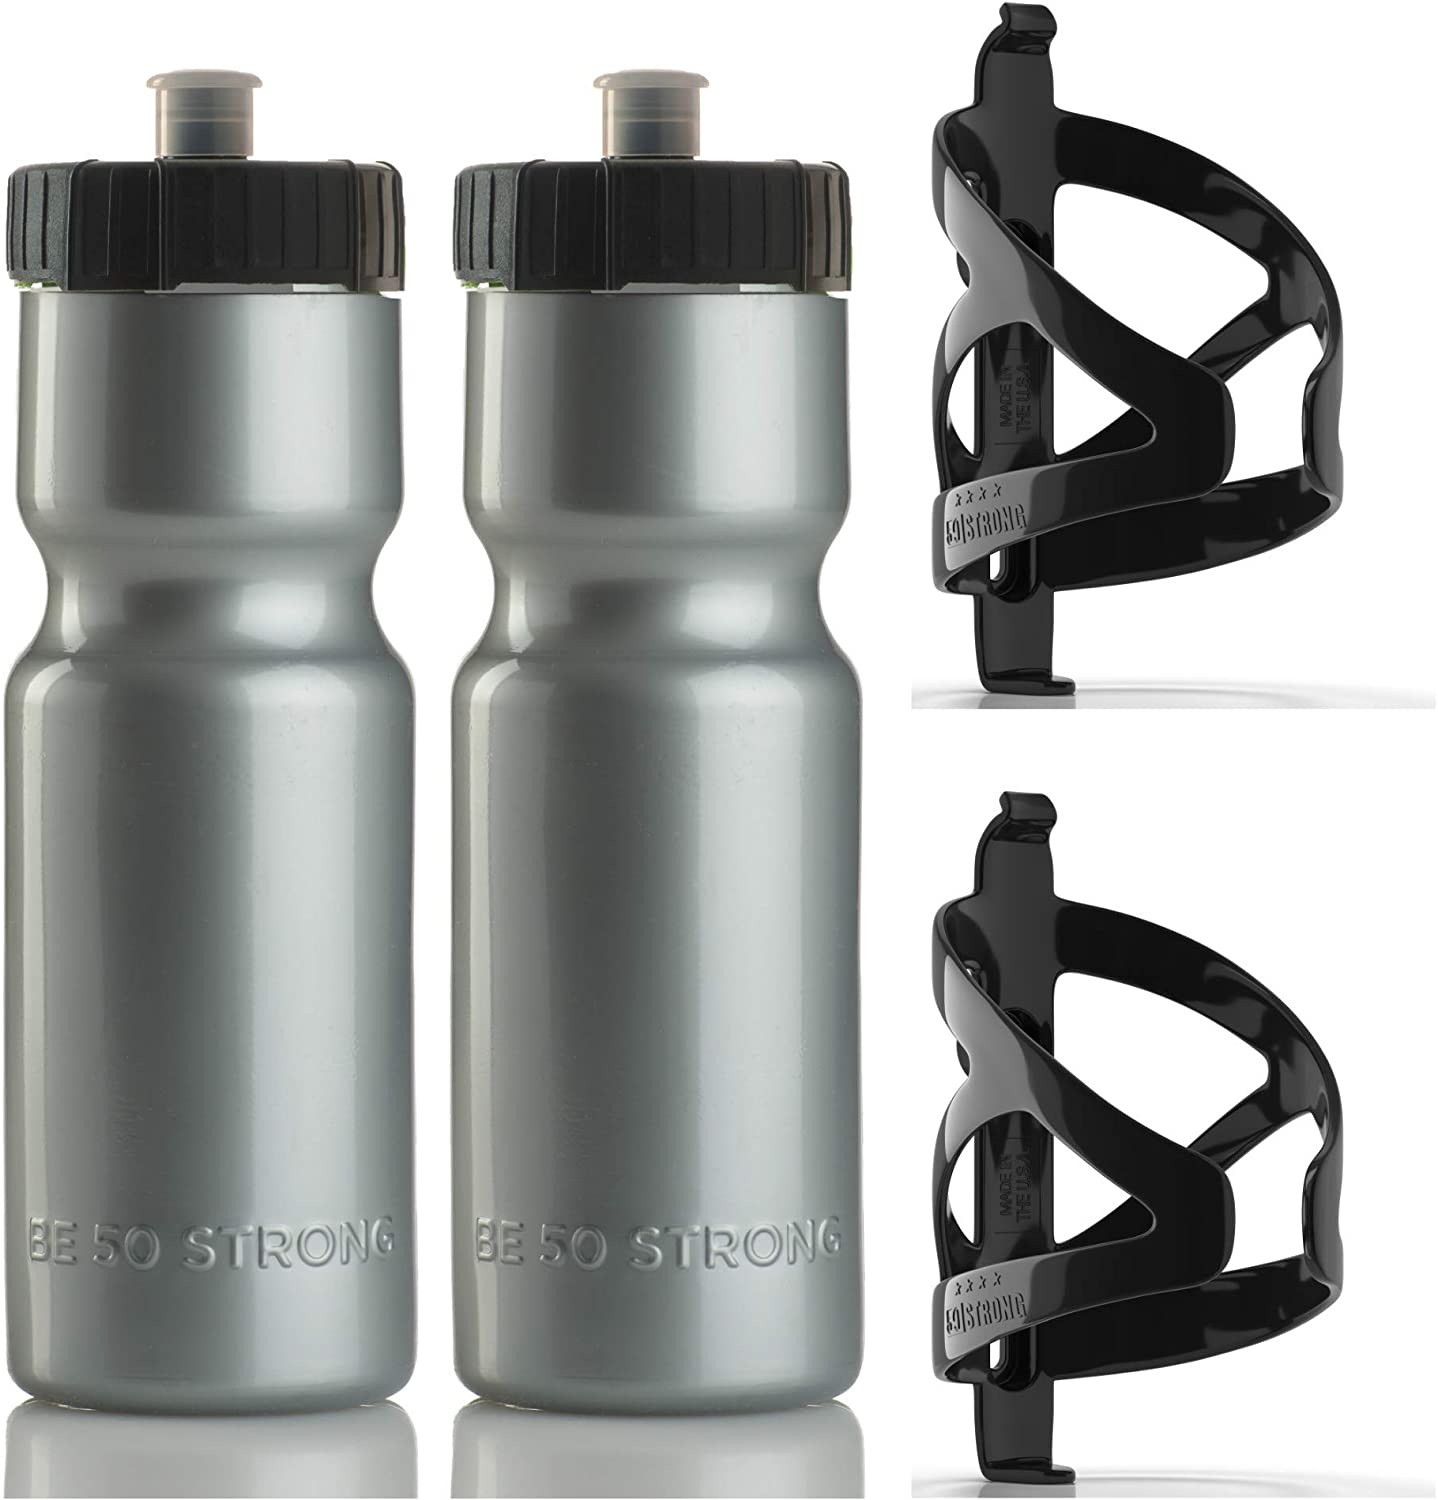 Max 88% OFF Bike 100% quality warranty! Bottle Holder with Water - 22 2 oz. BPA Free Pack